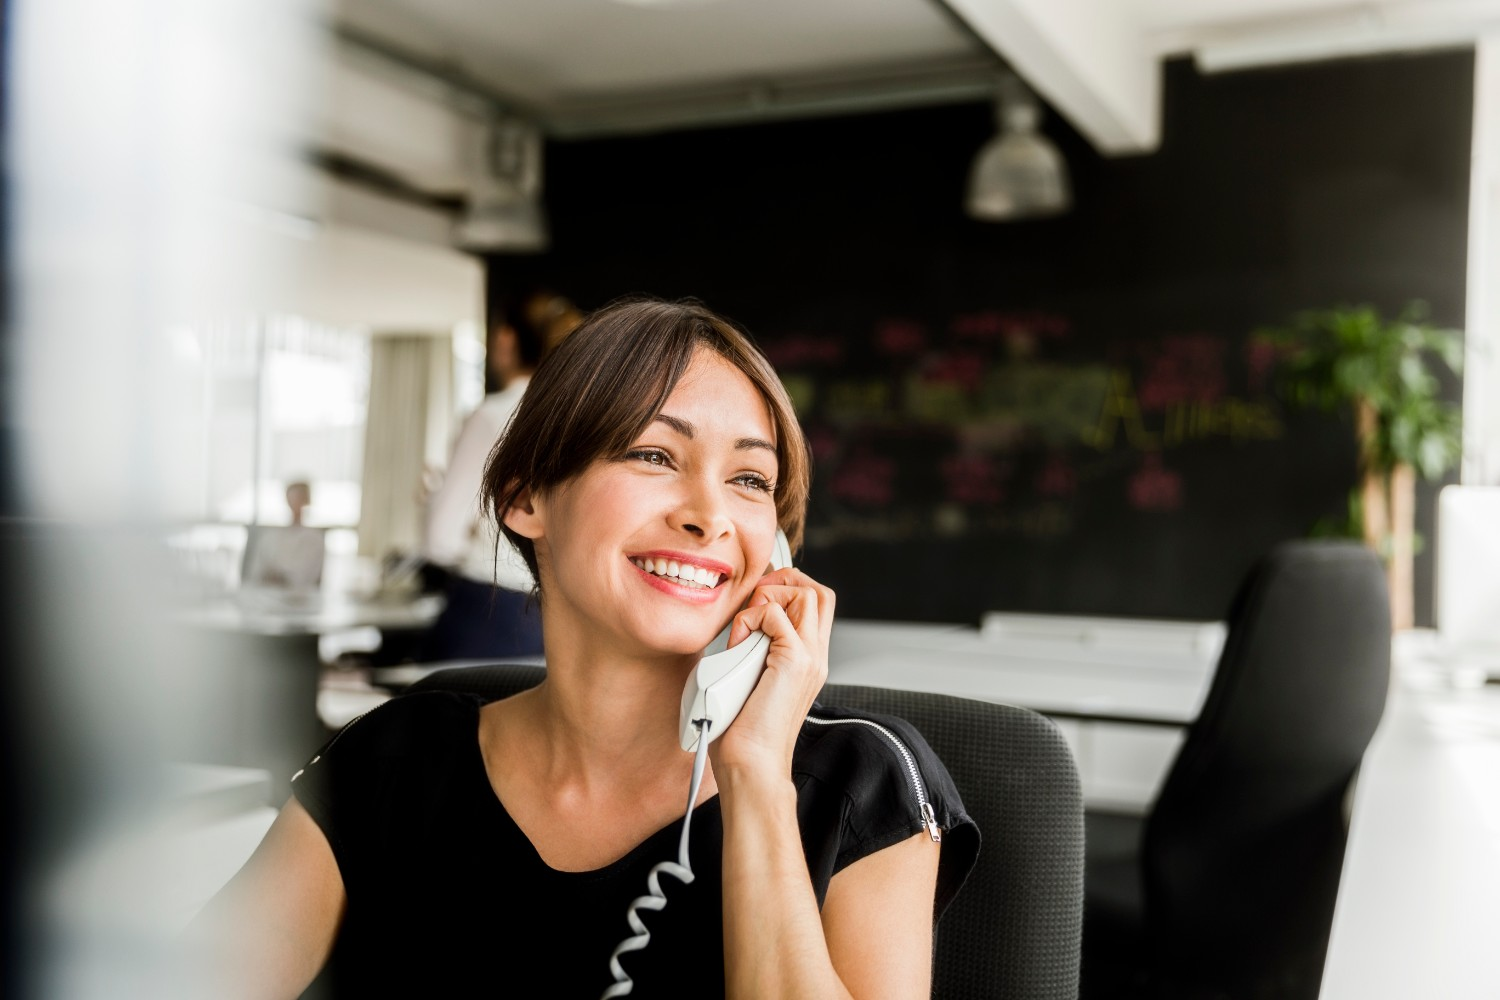 Cheerful businesswoman using VoIP phone in office. Happy female professional is looking away while sitting on chair. Beautiful executive is at brightly lit workplace.